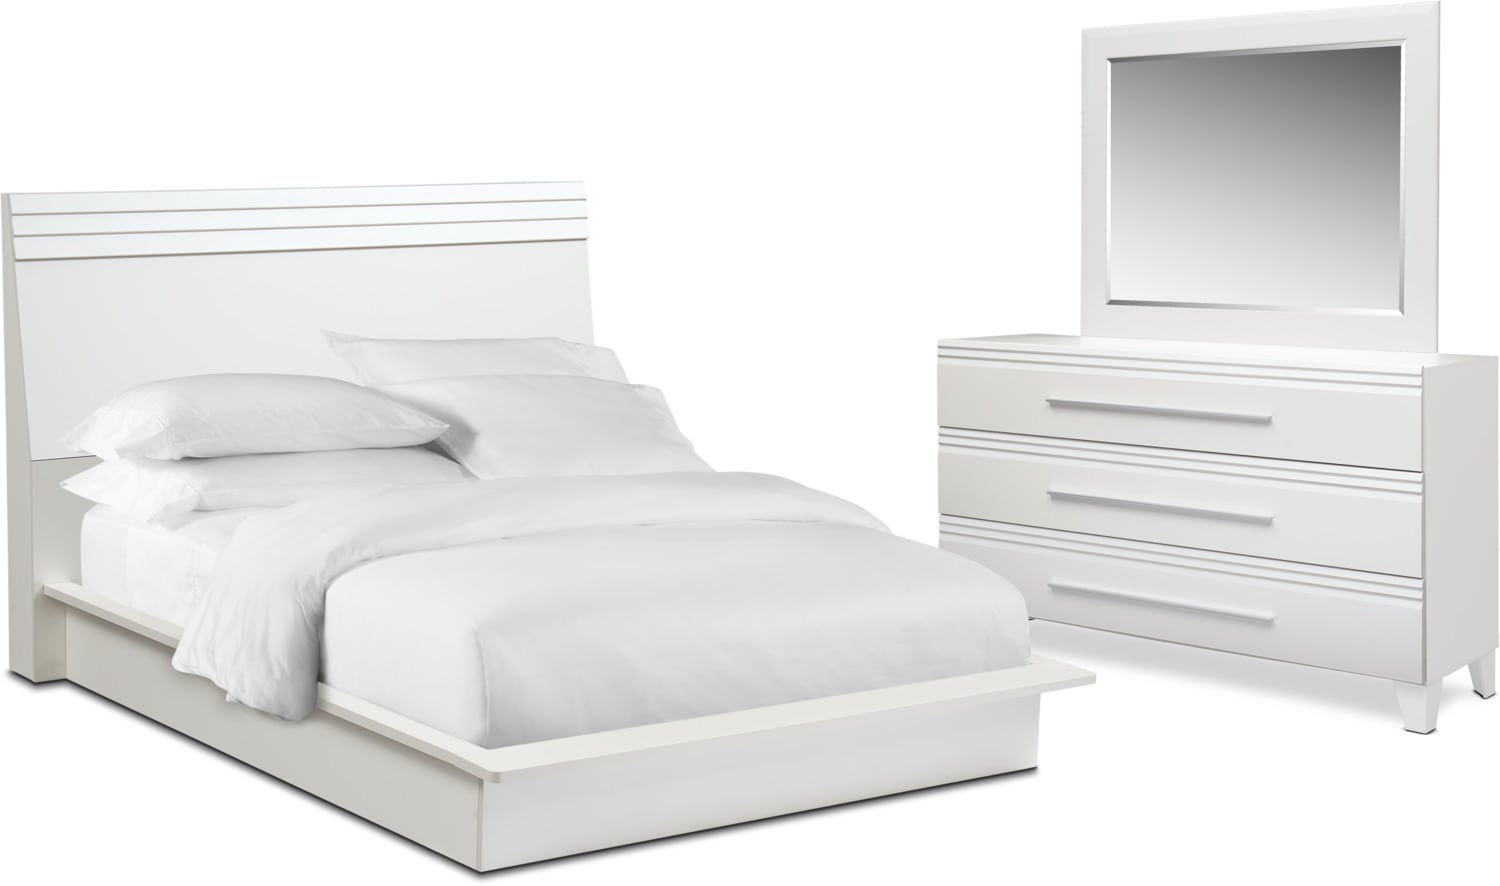 Bedroom Furniture - Allori 5-Piece Bedroom Set